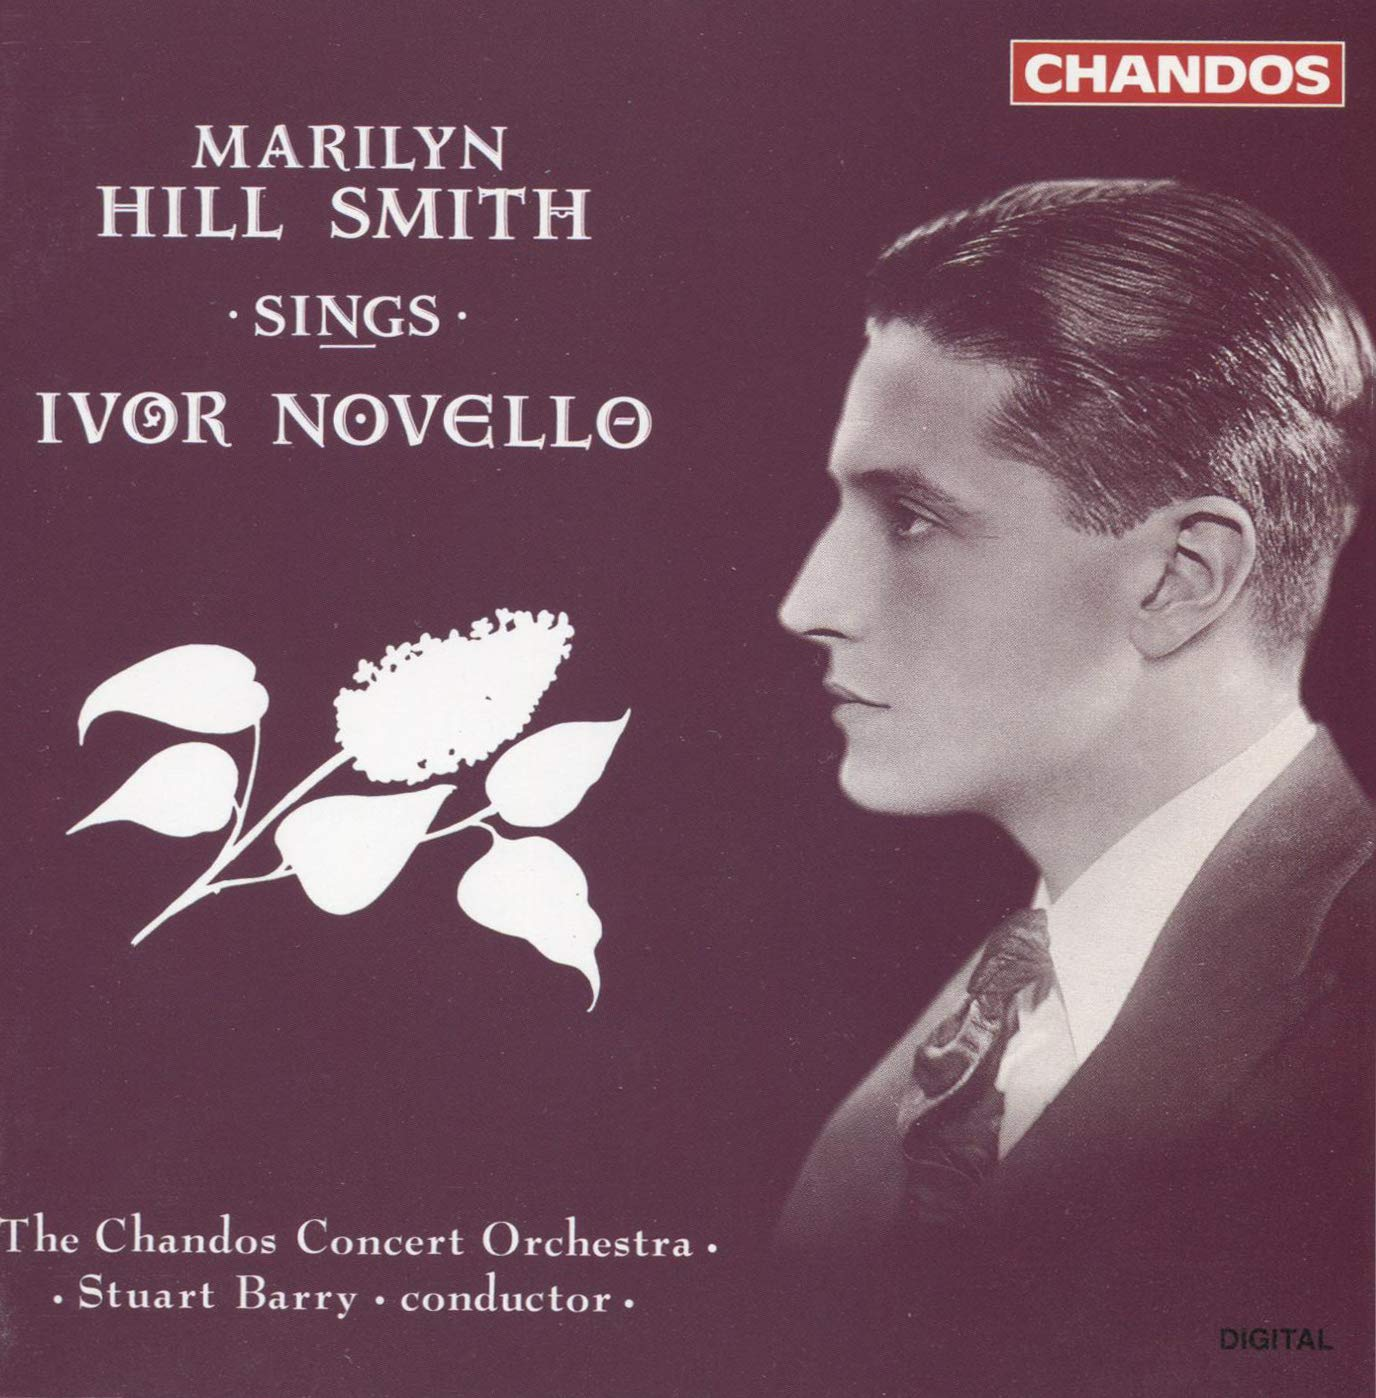 Credence Marilyn Hill Smith Novello Sings Ivor Free Shipping New